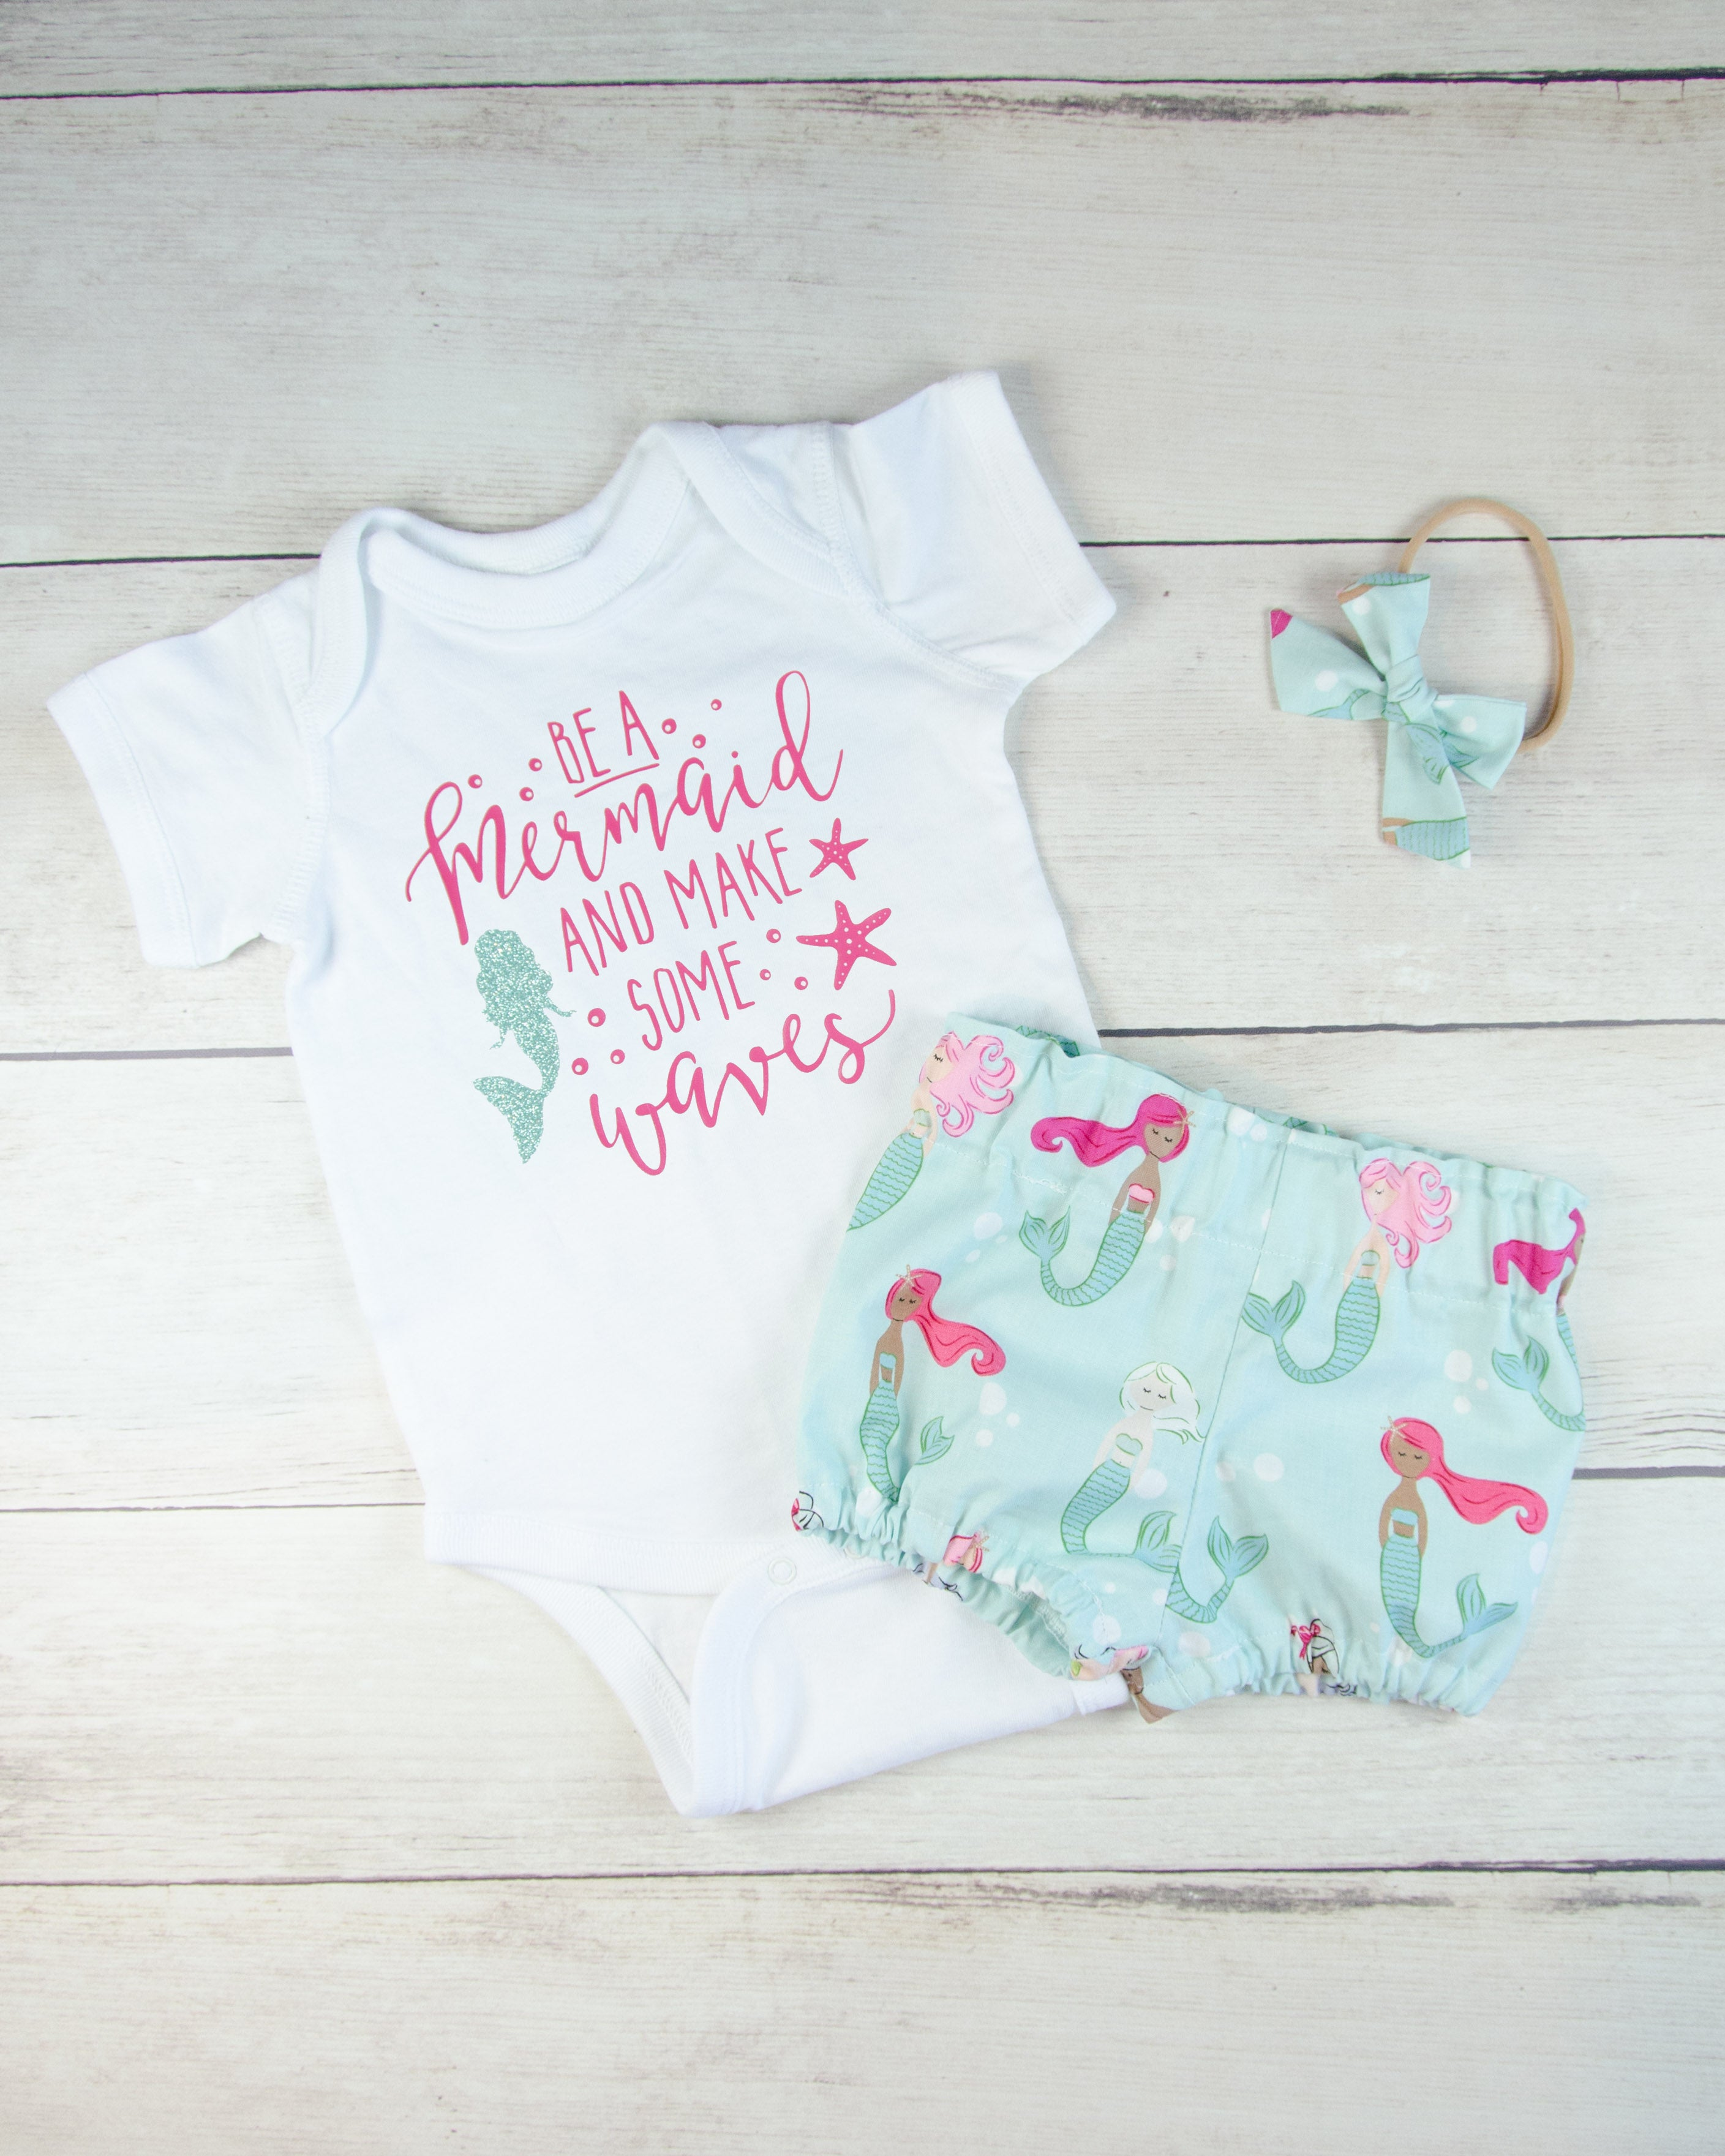 Minty Mermaid Baby Toddler Bloomers or Skirt Outfit